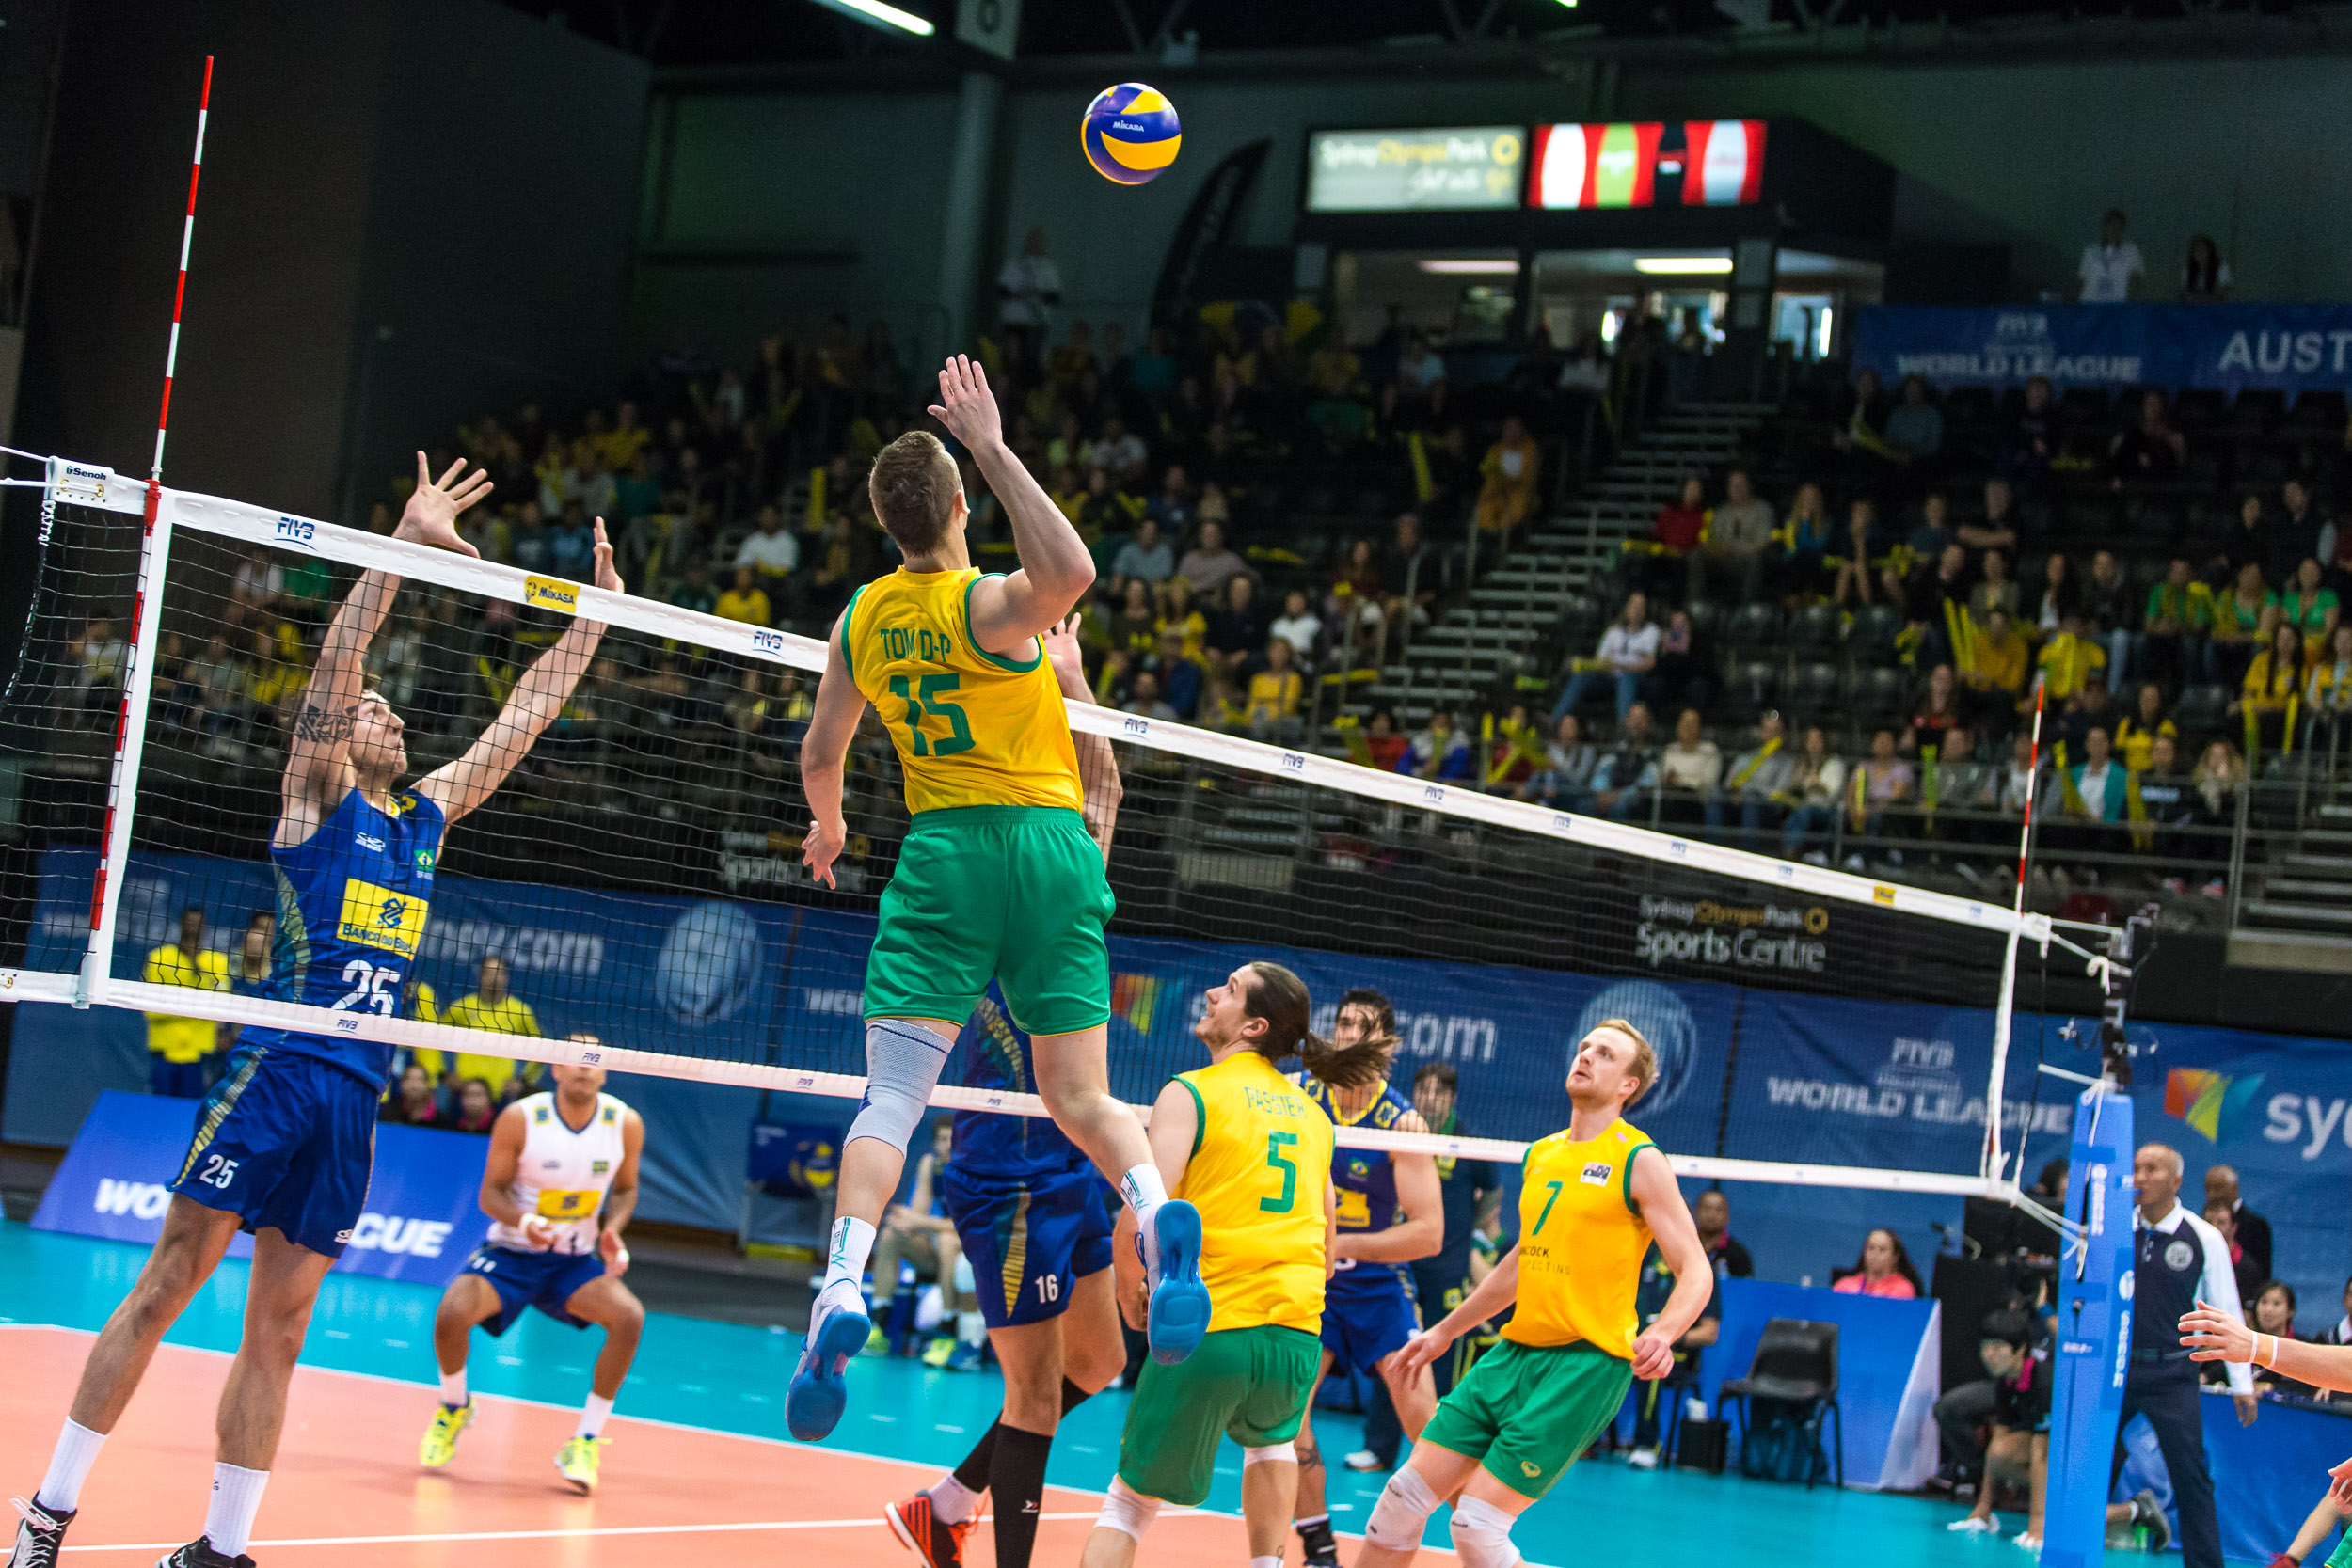 http://www.fivb.org/Vis2009/Images/GetImage.asmx?No=201486547&maxSize=960